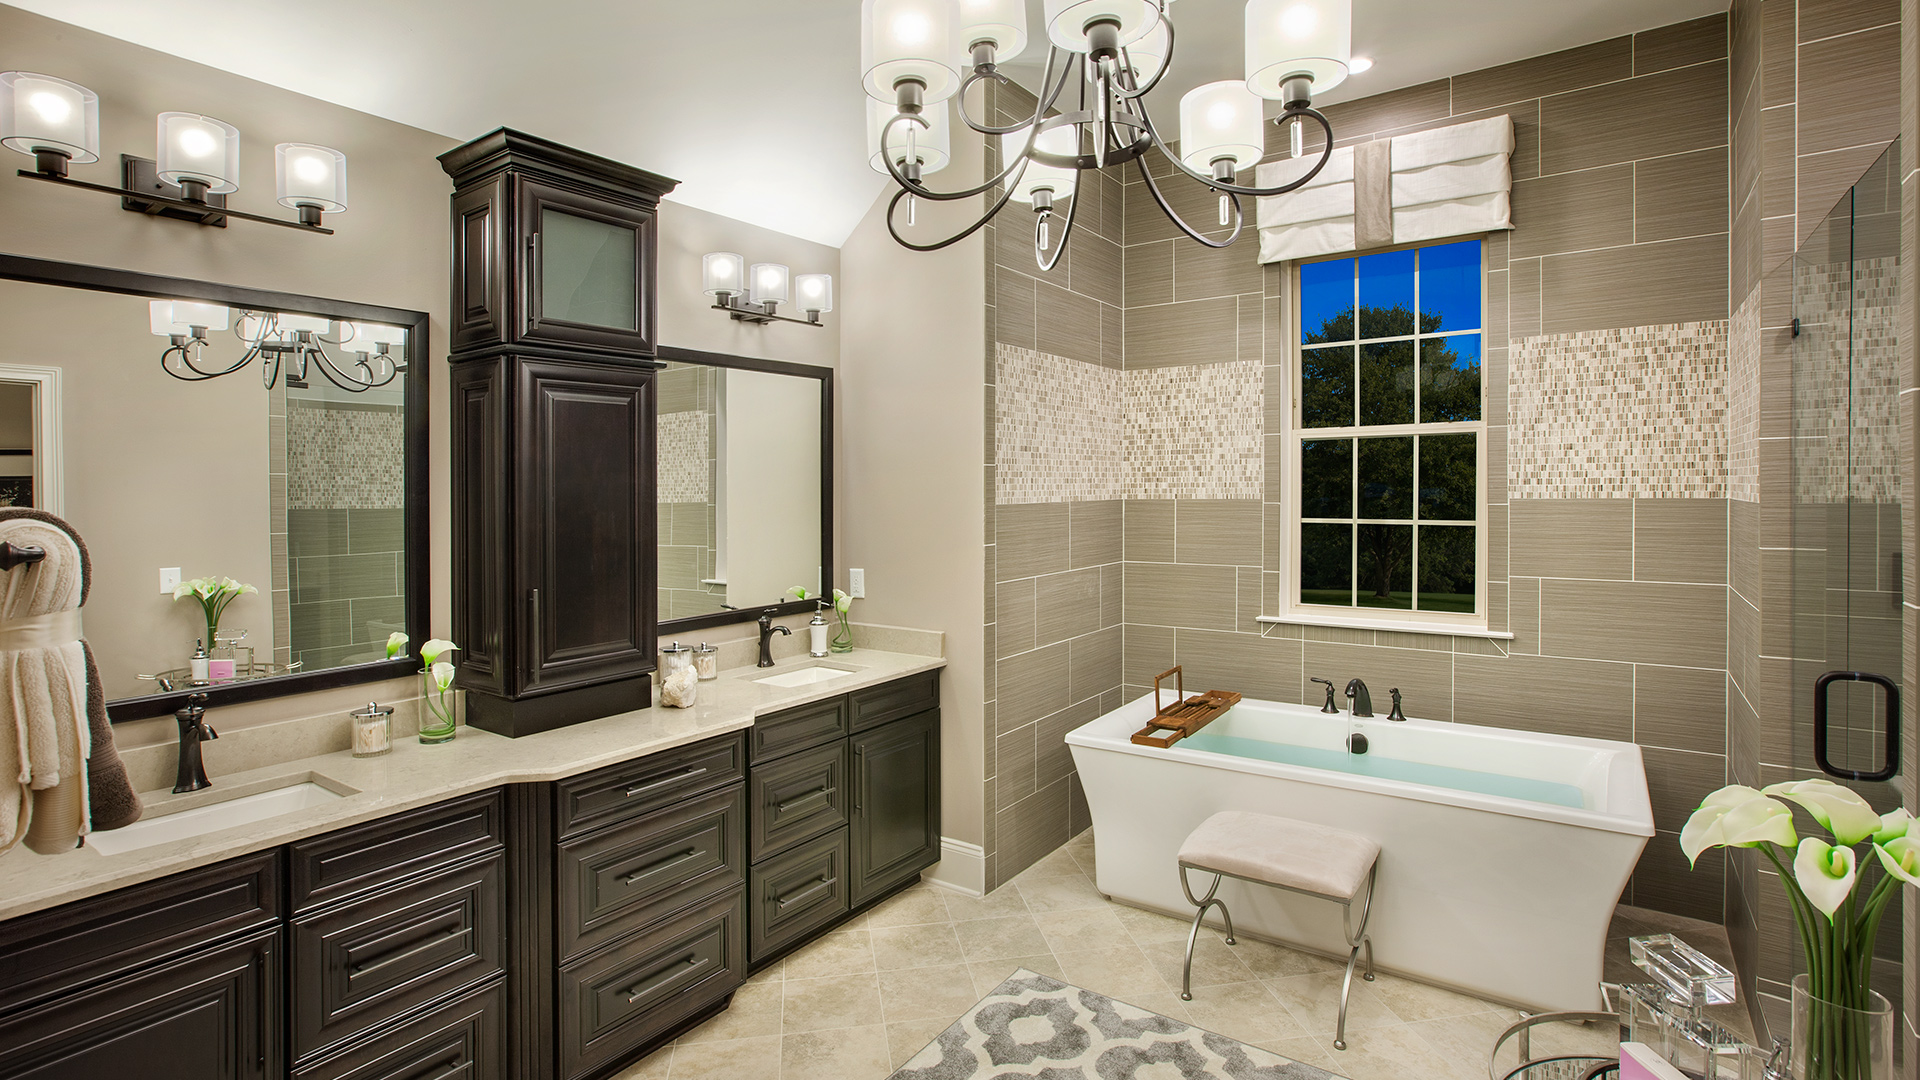 Apex Nc New Homes For Sale Enclave At White Oak Creek